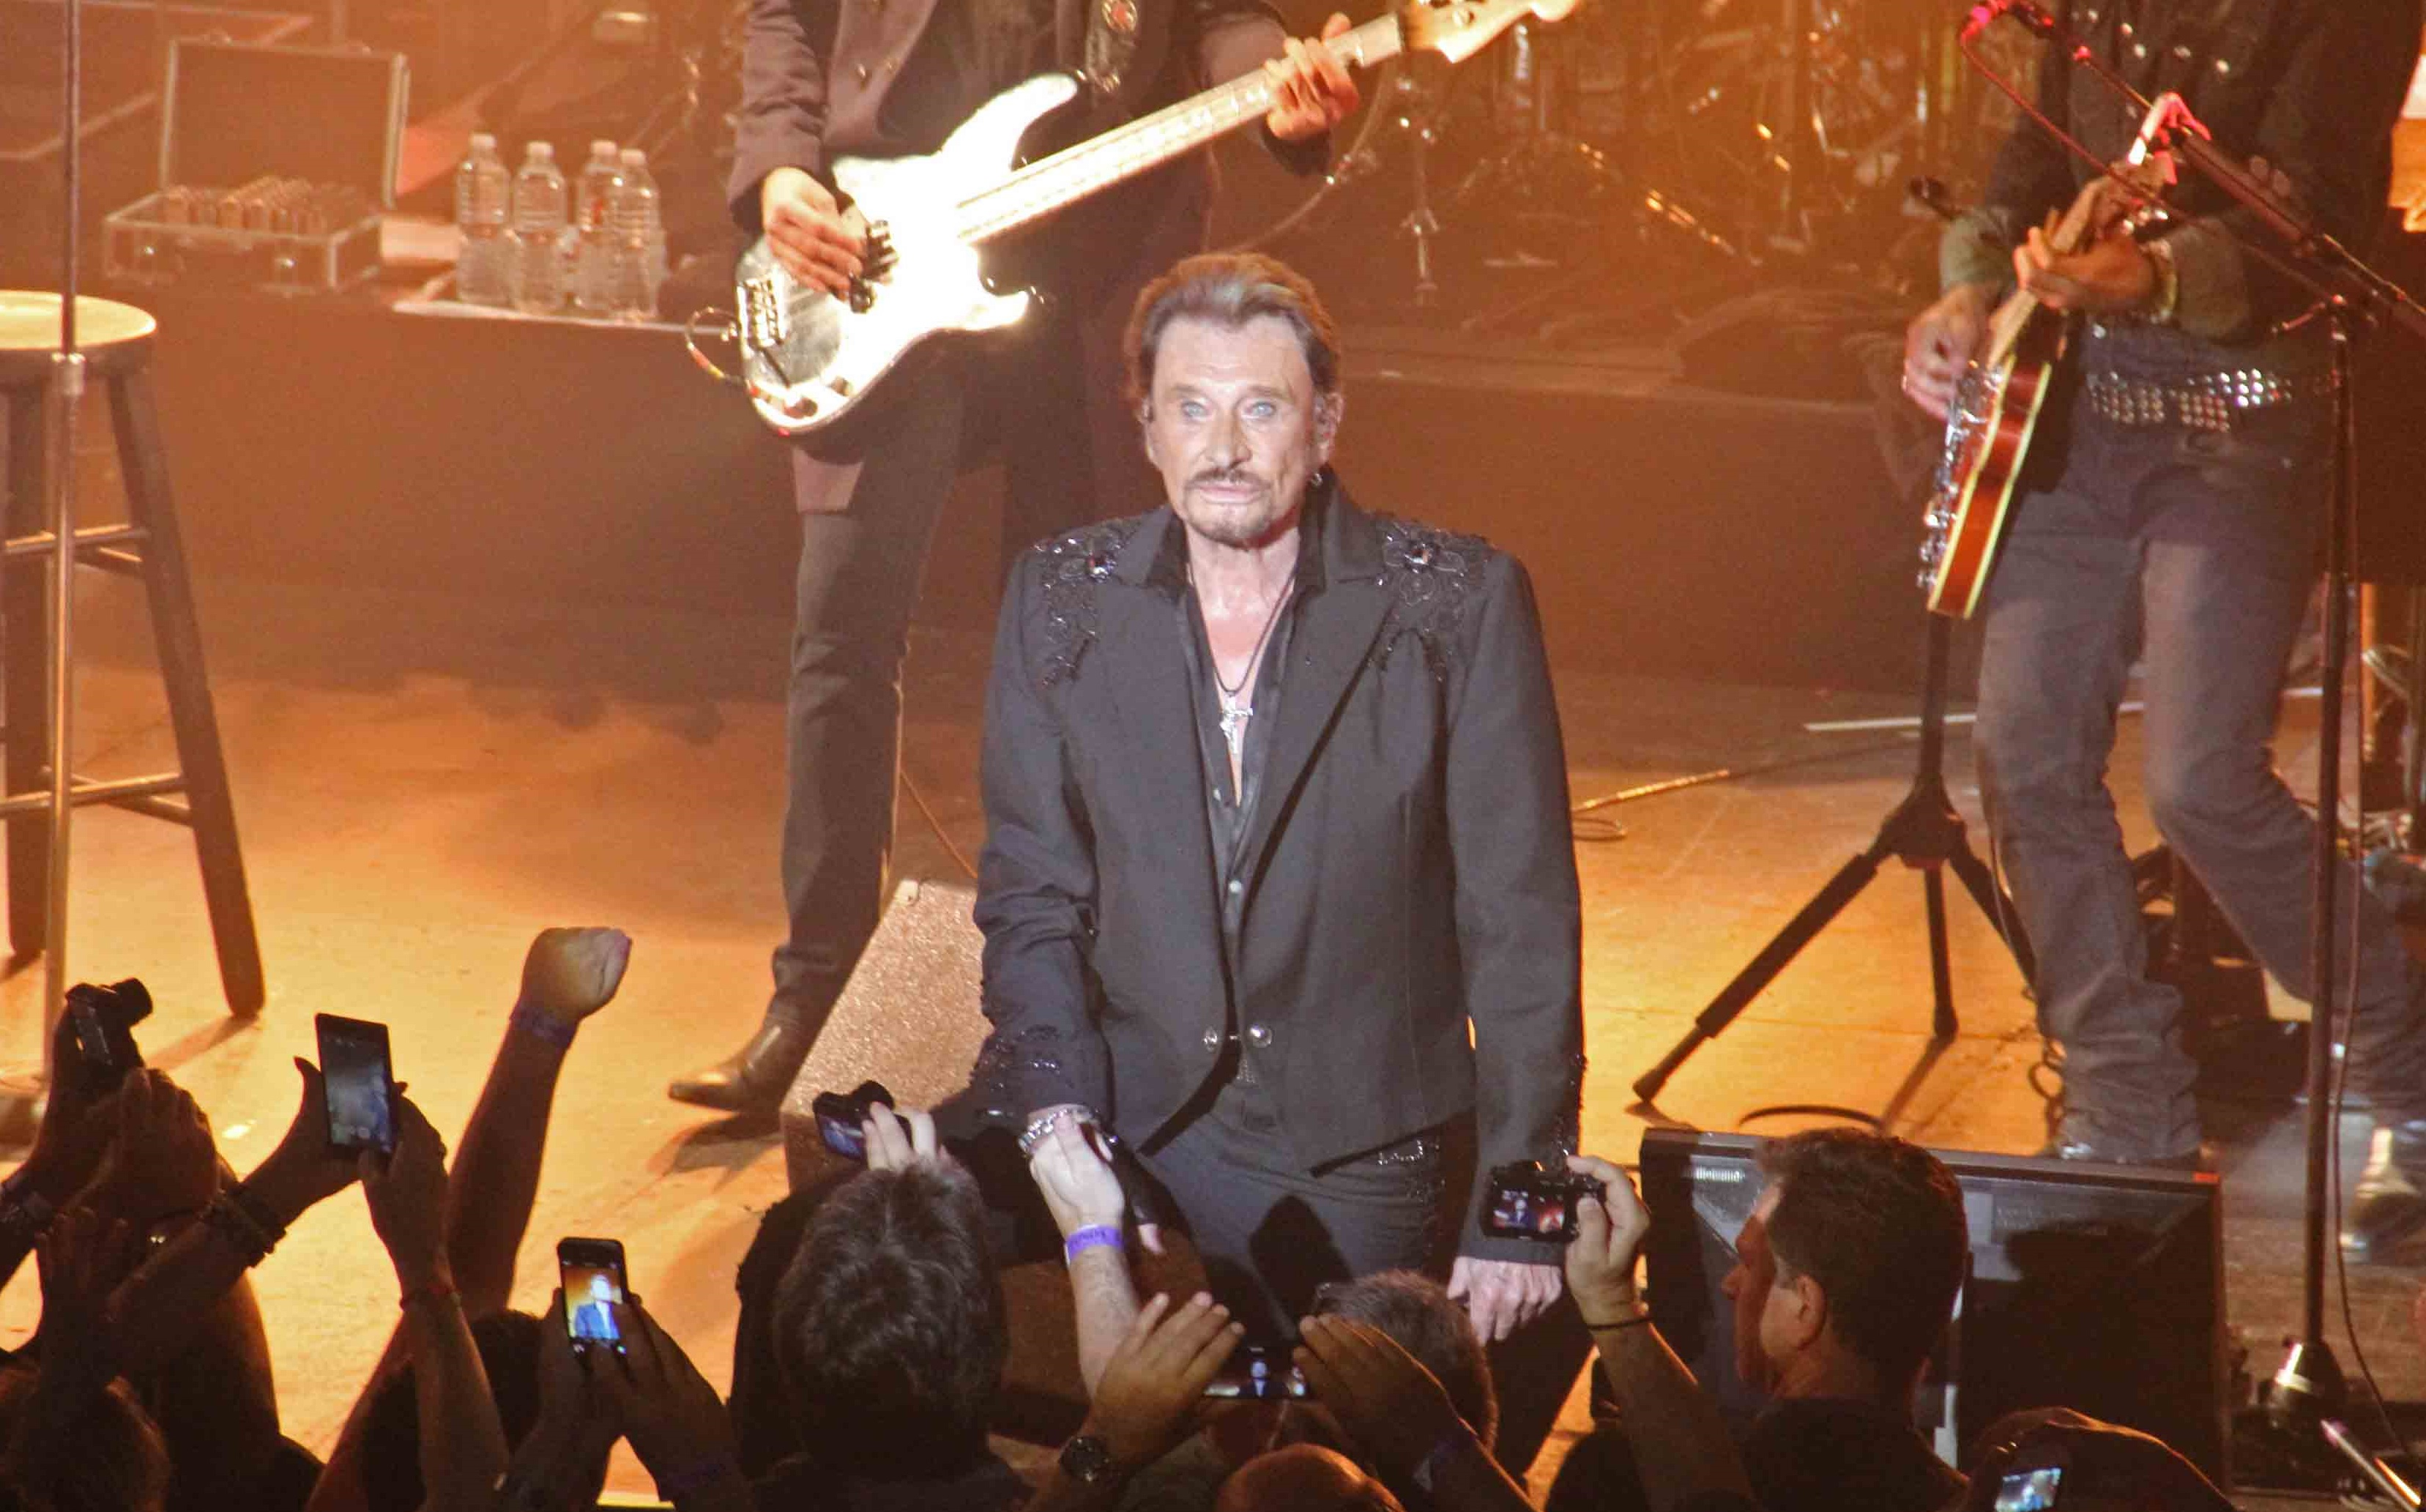 Johnny Hallyday, concert, photo by Pamela Price